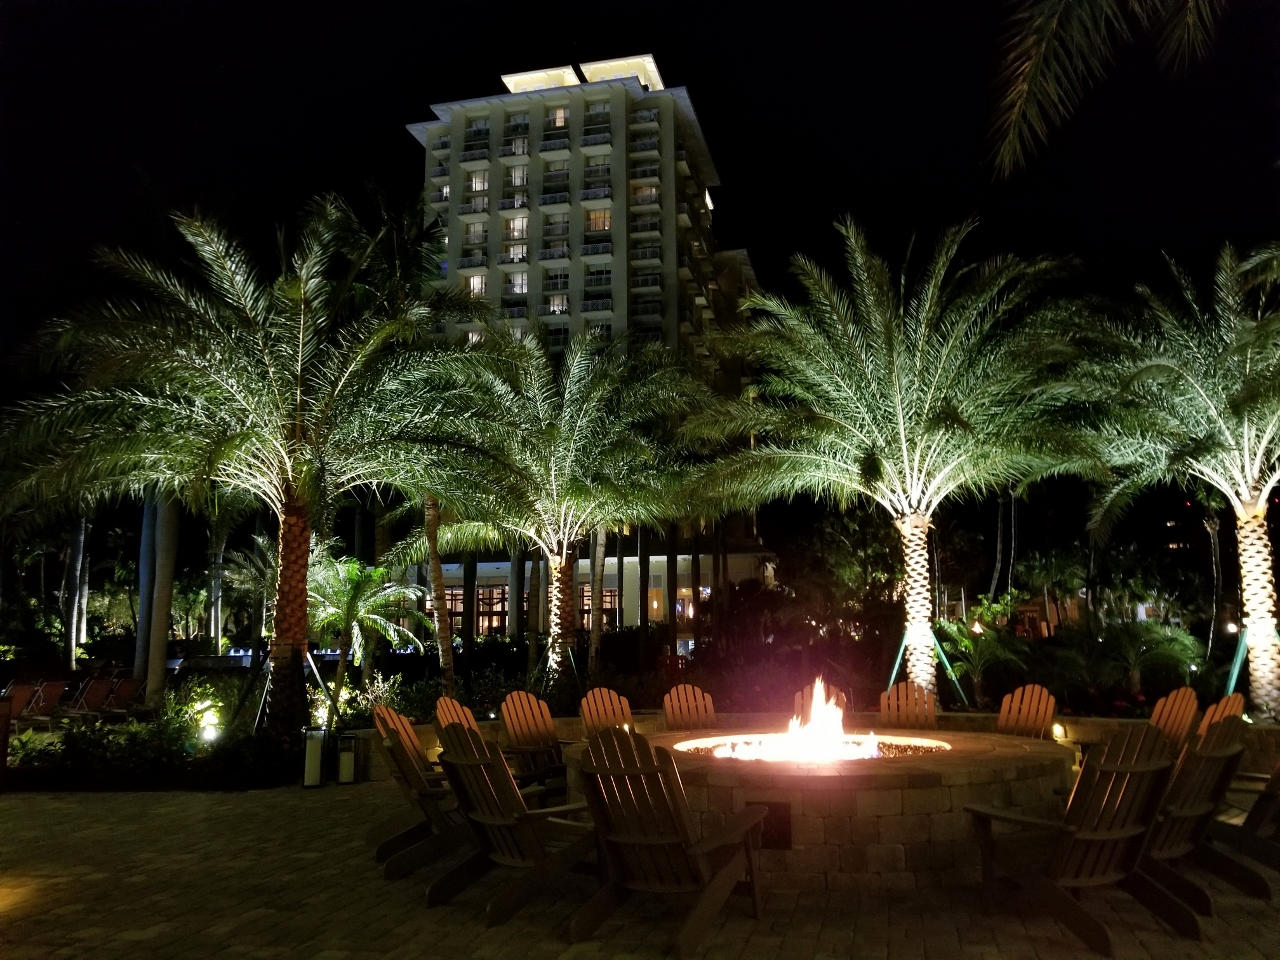 Fire pits at Hyatt Regency Coconut Point